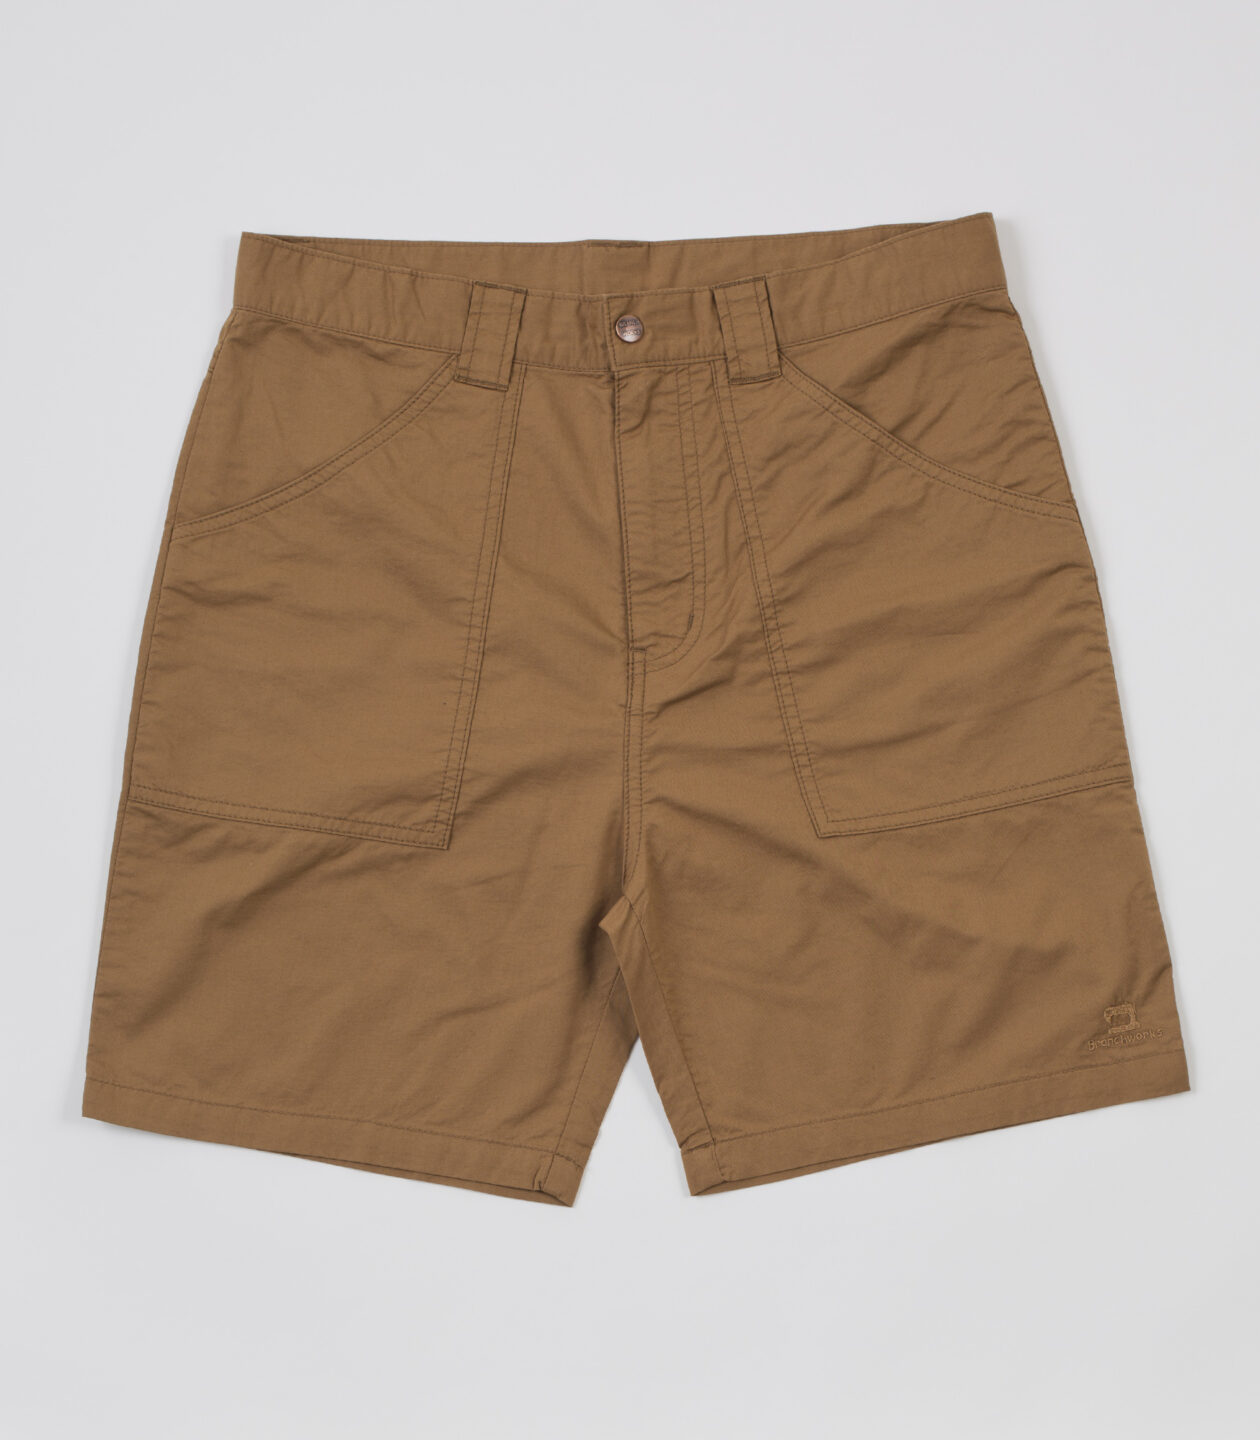 DY2-4001 Brown